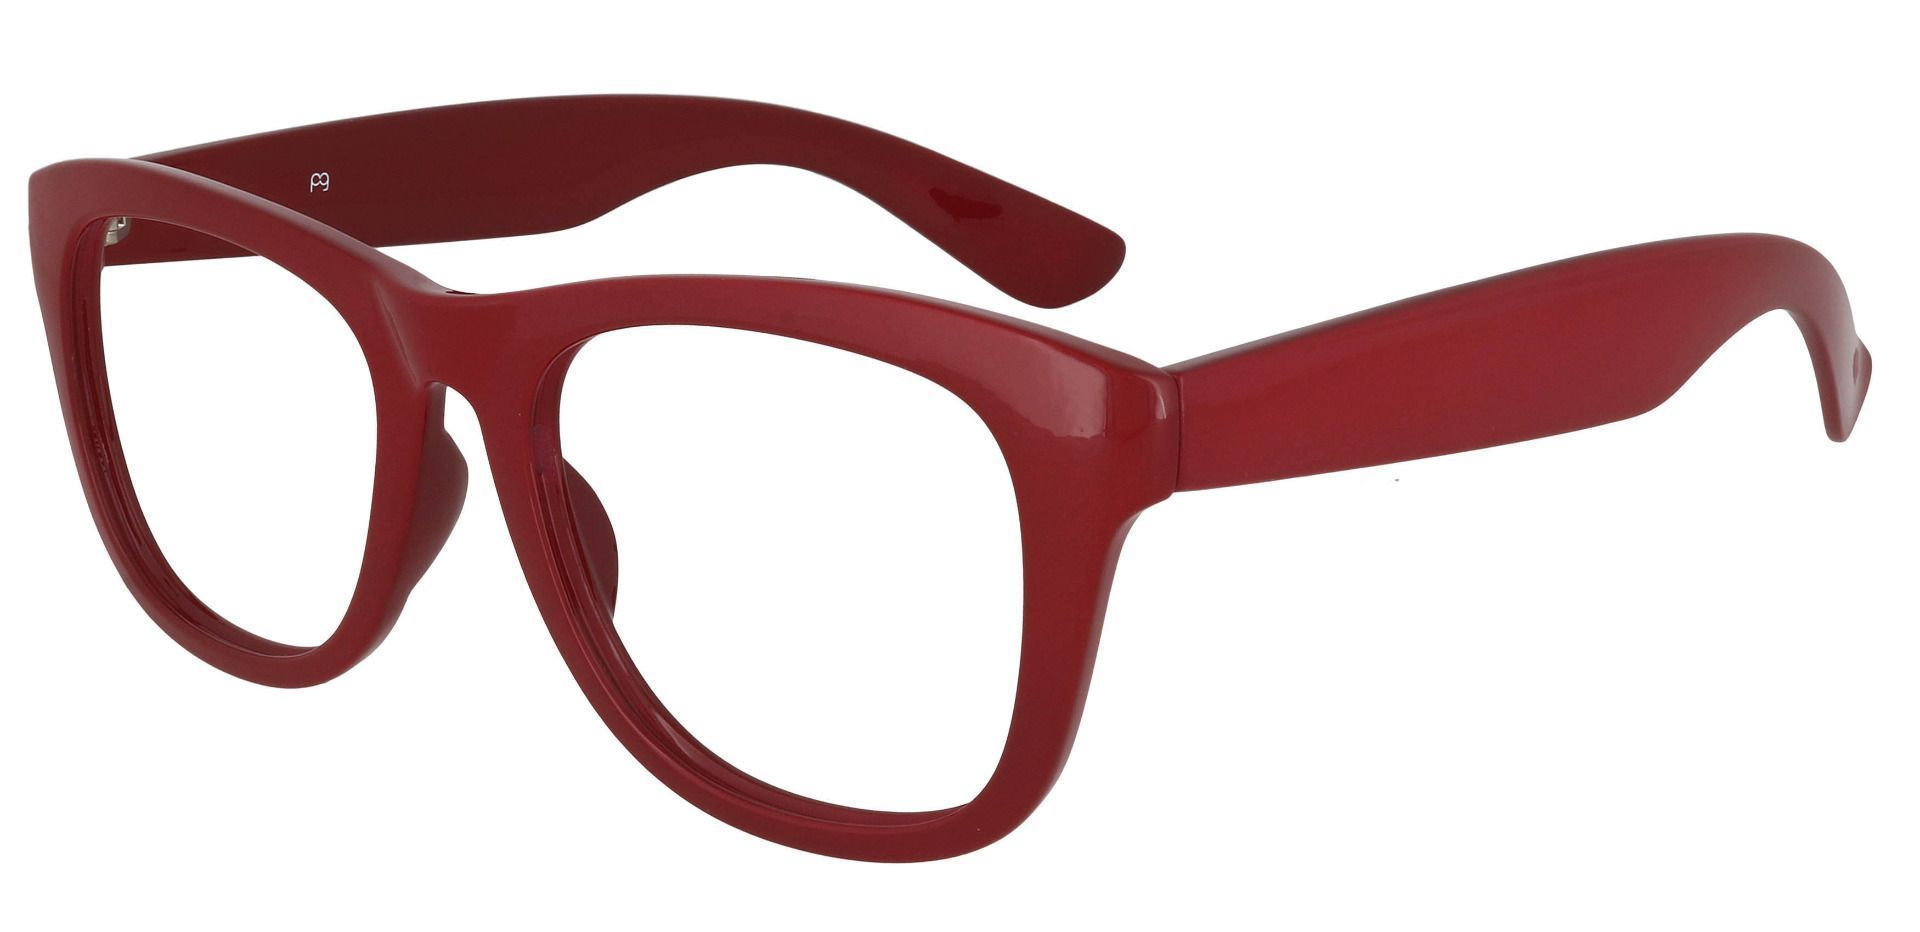 Callie Square Reading Glasses - Red